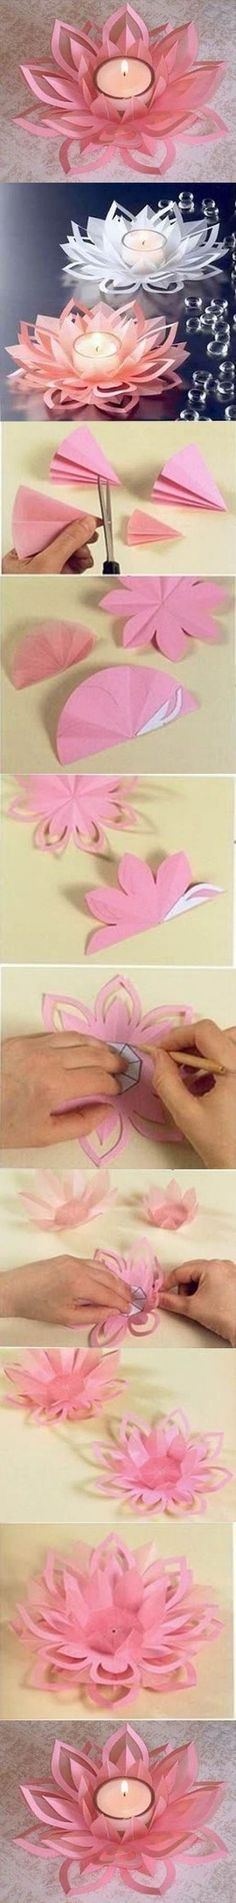 Beautiful DIY Candle Holders. Fun idea for a Spring party.